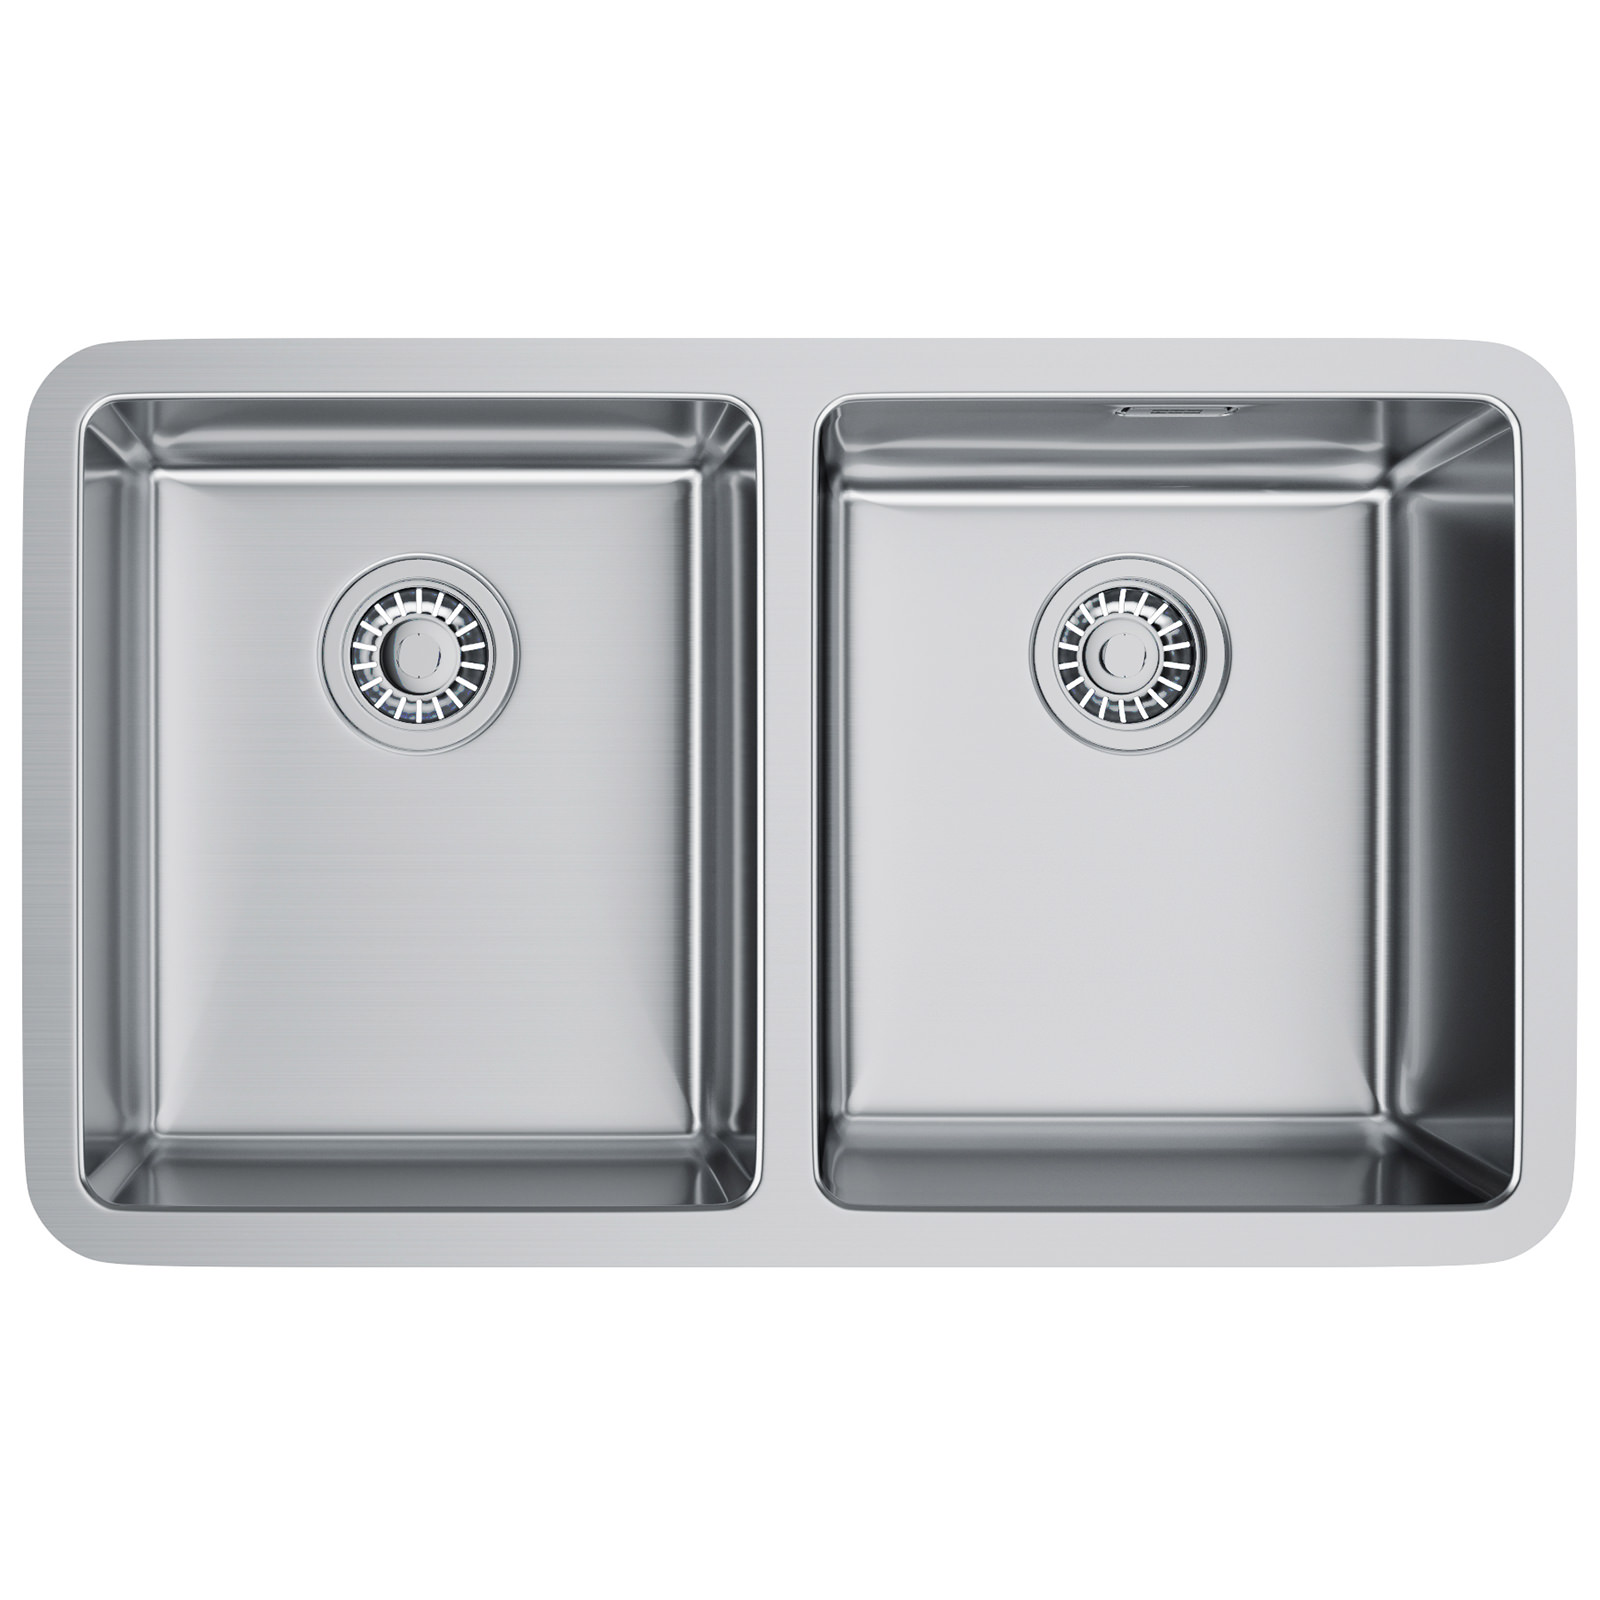 Franke Sinks Undermount Stainless Steel : Franke Kubus KBX 120 34-34 Stainless Steel 2 Bowl Undermount Sink ...